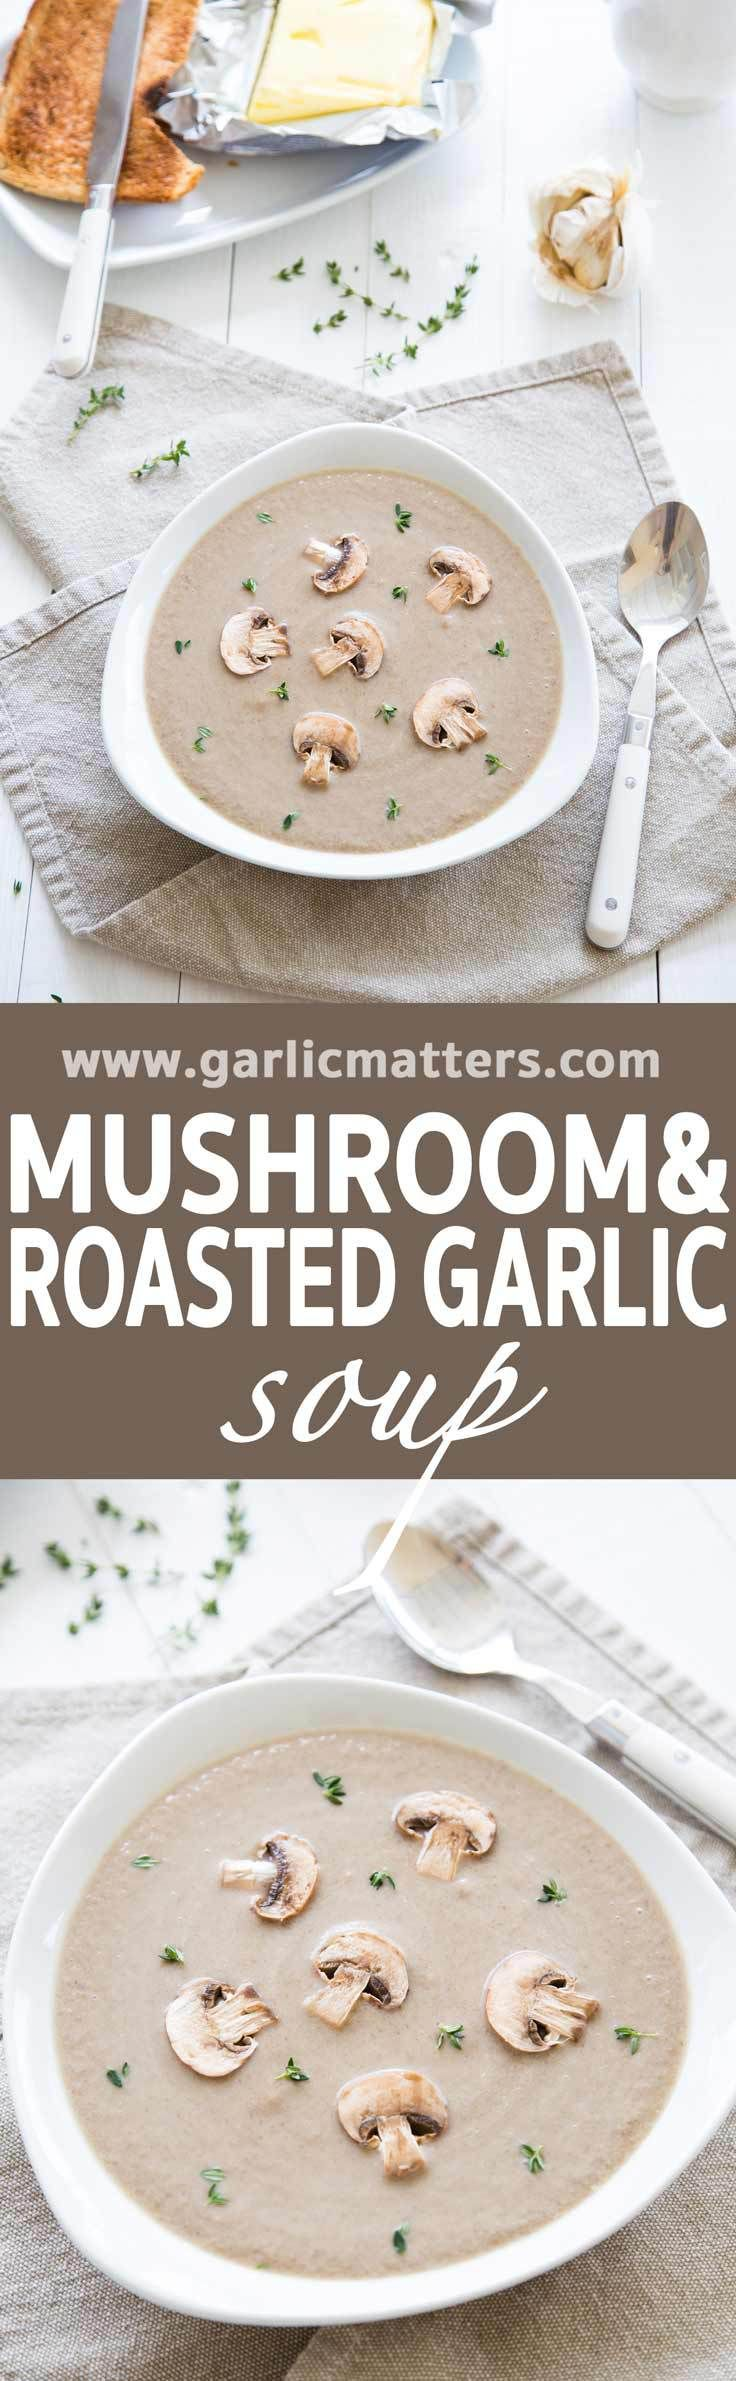 Mushroom and Roasted Garlic Soup recipe is like marriage made in heaven. Perfect, gluten free appetizer or add a slice of crusty bread to make it into a comforting lunch.  Full full of deep flavours of forest mushrooms and sweetness of roasted garlic. This soup is absolutely delicious and you can make it in just under 1 hour.